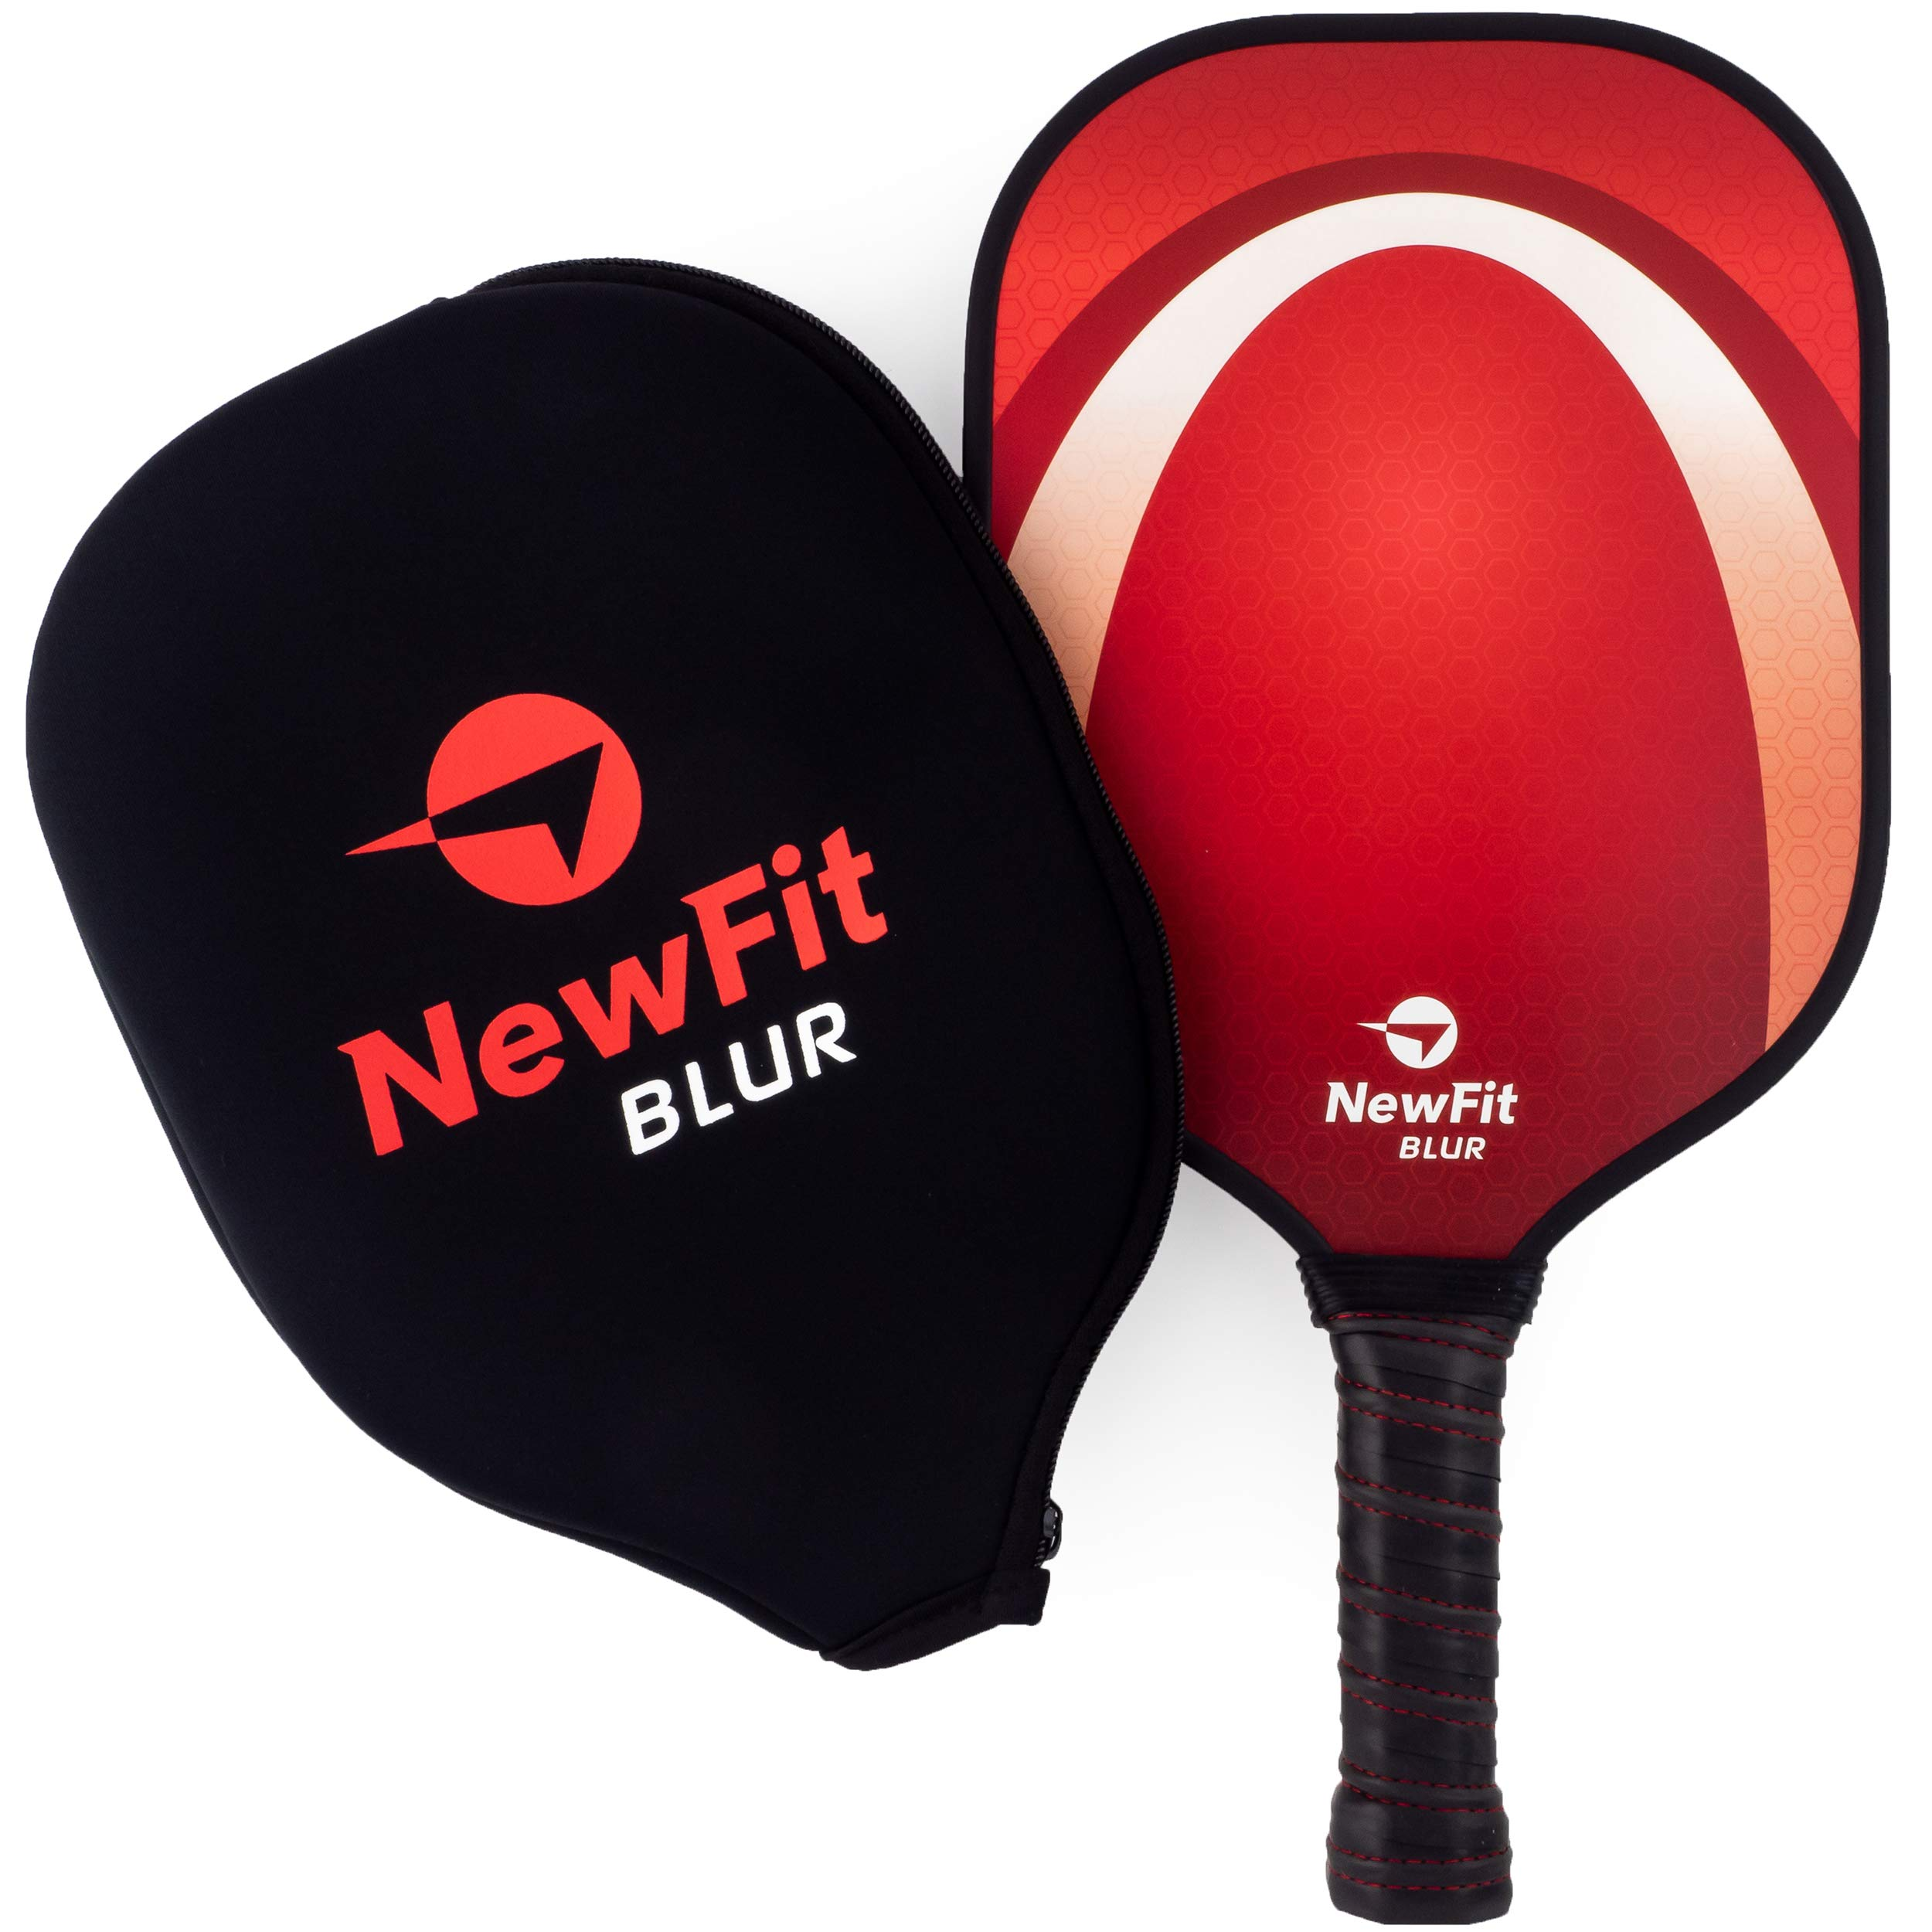 NewFit Blur Pickleball Paddle - USAPA Approved - Graphite Face & Polymer Core for a Quiet and Light Racket (Red Single) by NewFit Sports